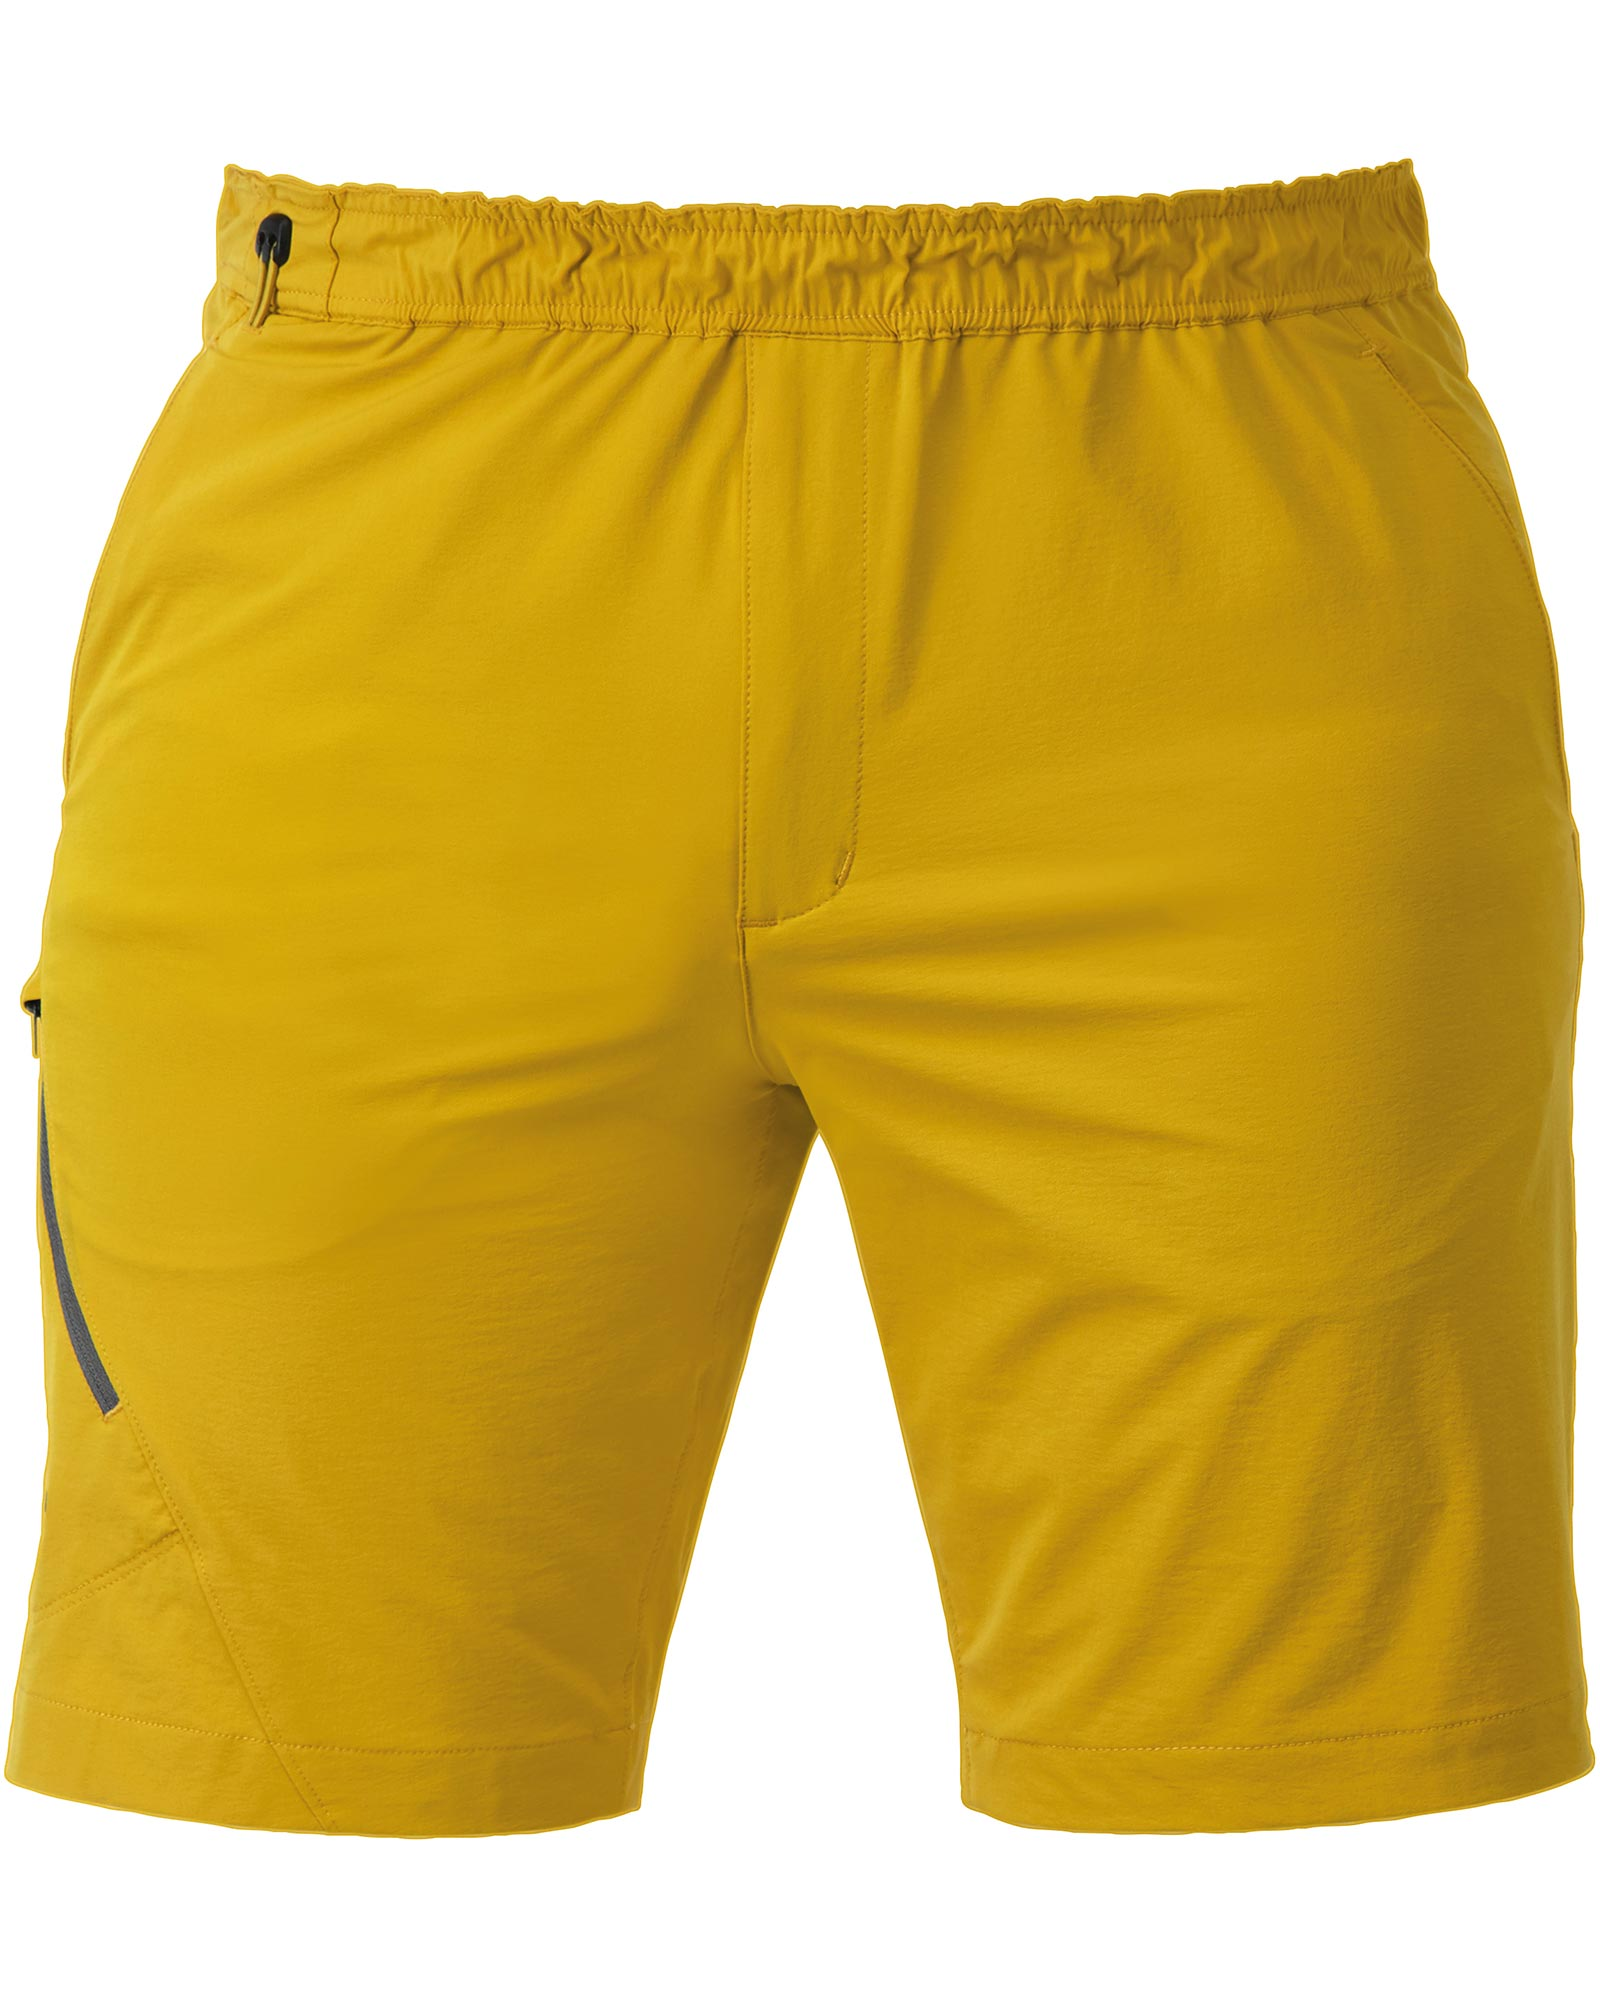 Product image of Mountain equipment Men's Comici Trail Shorts